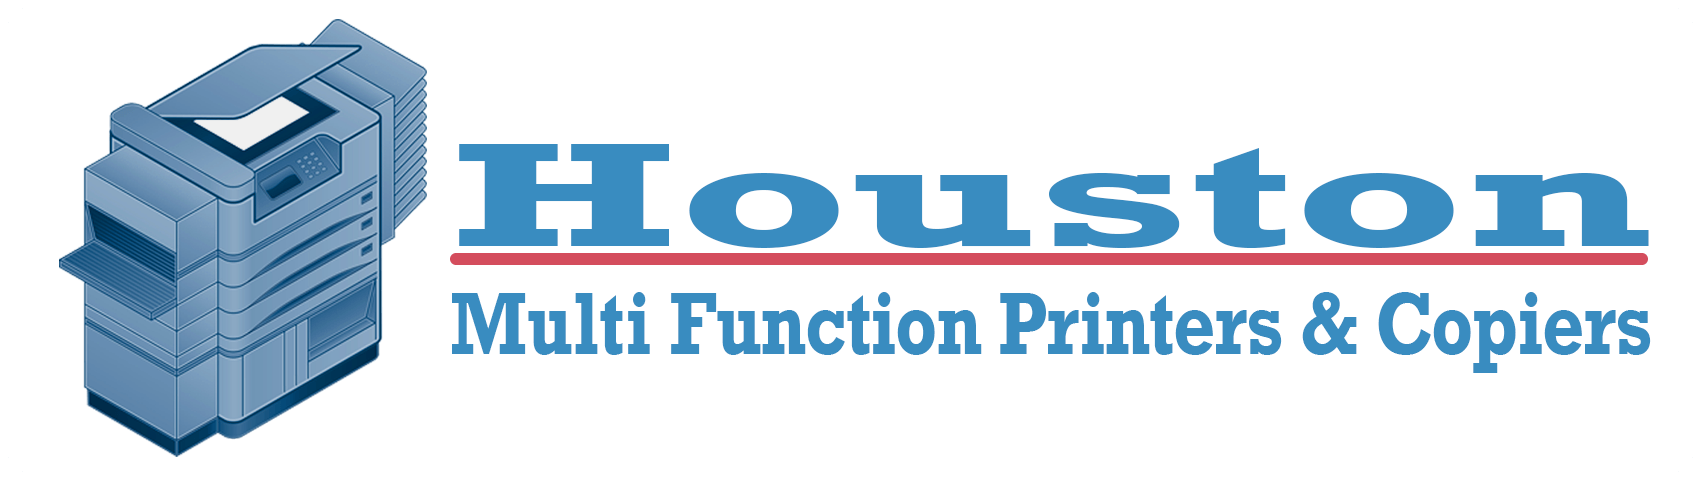 Houston Multi-Function Printers & Copiers